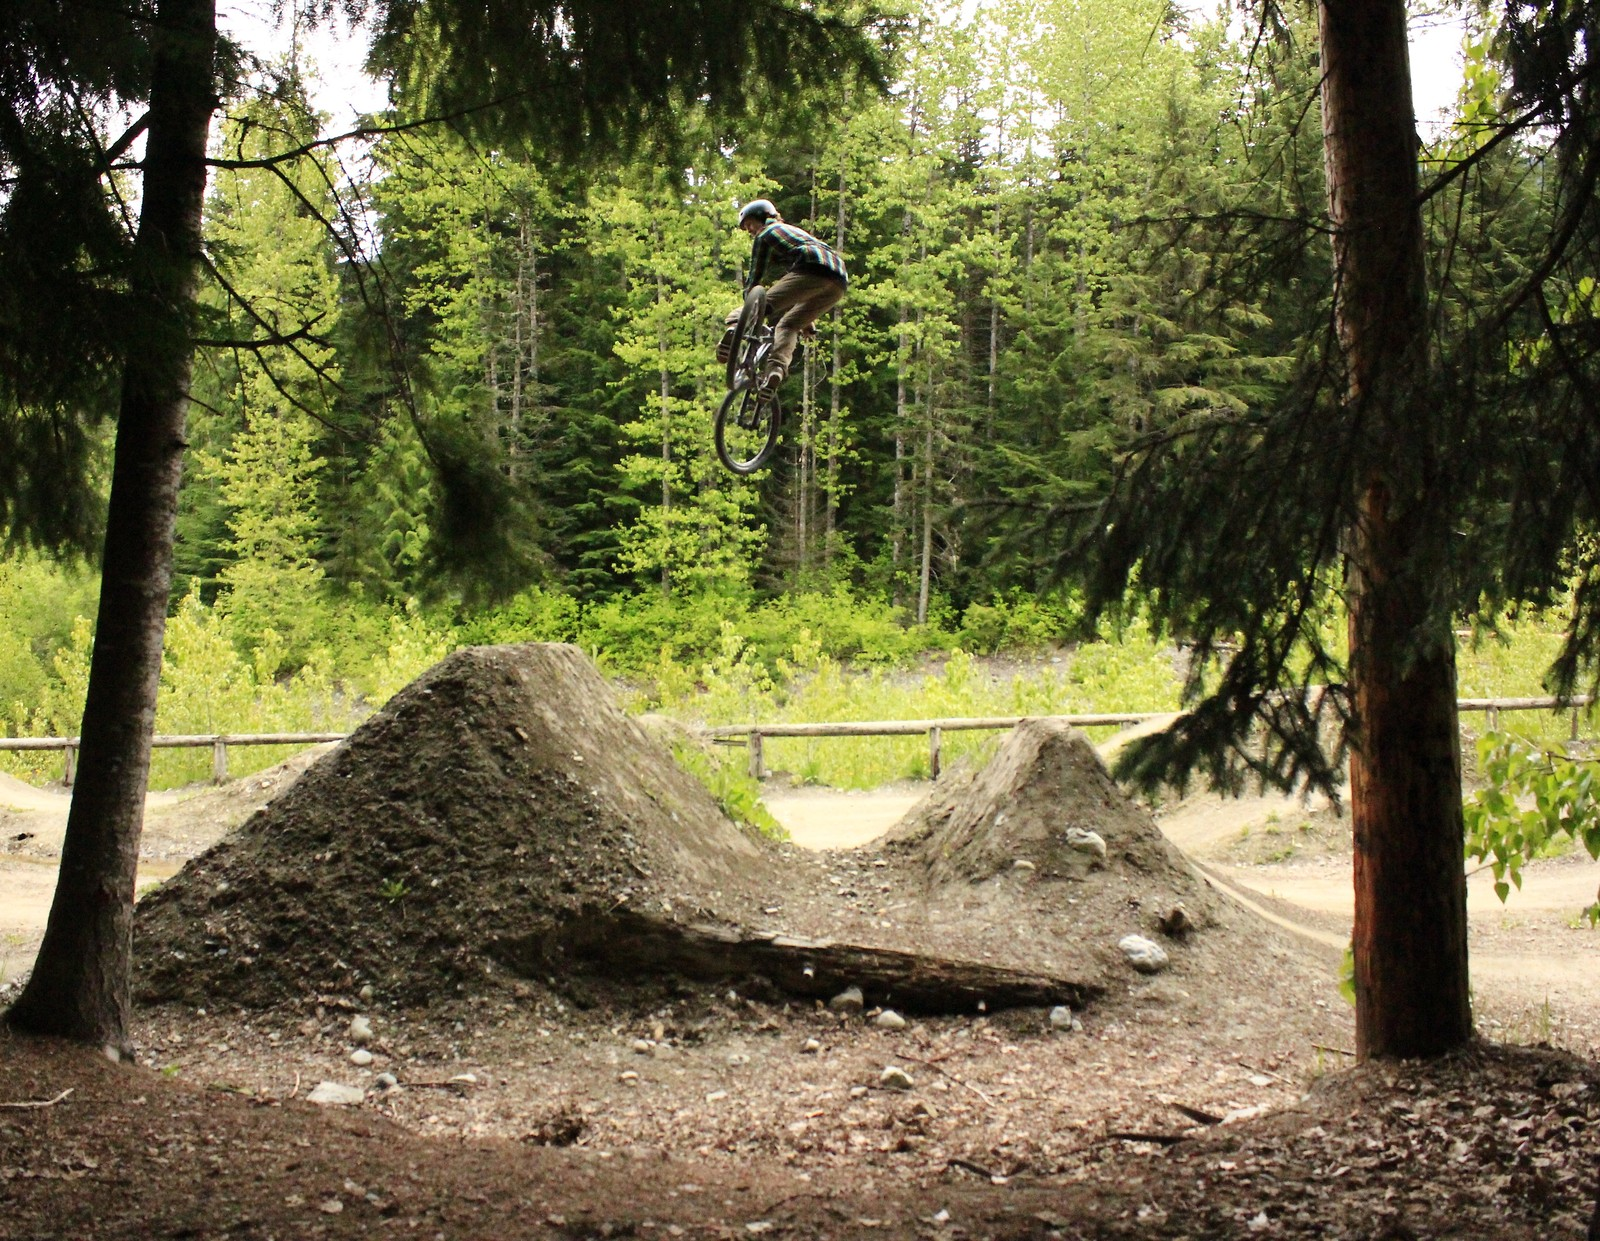 Whistler Whip. Devon White - dddwhite - Mountain Biking Pictures - Vital MTB